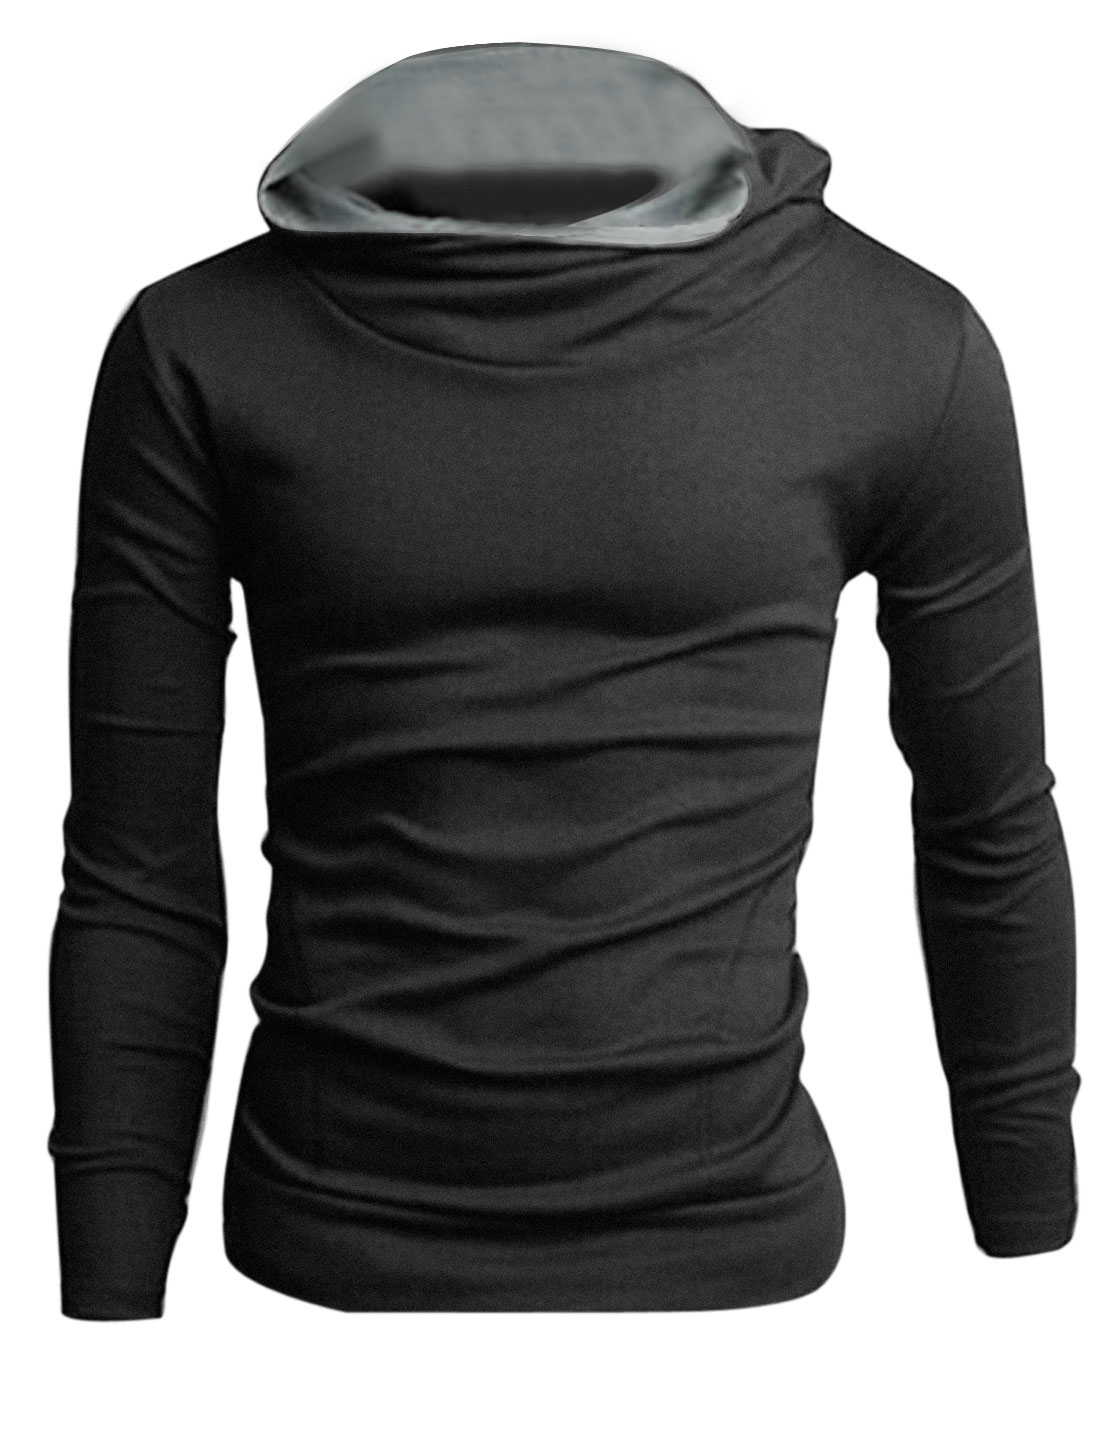 Men Cowl Neck Slant Pockets Front Chic Hoodie Dark Gray M